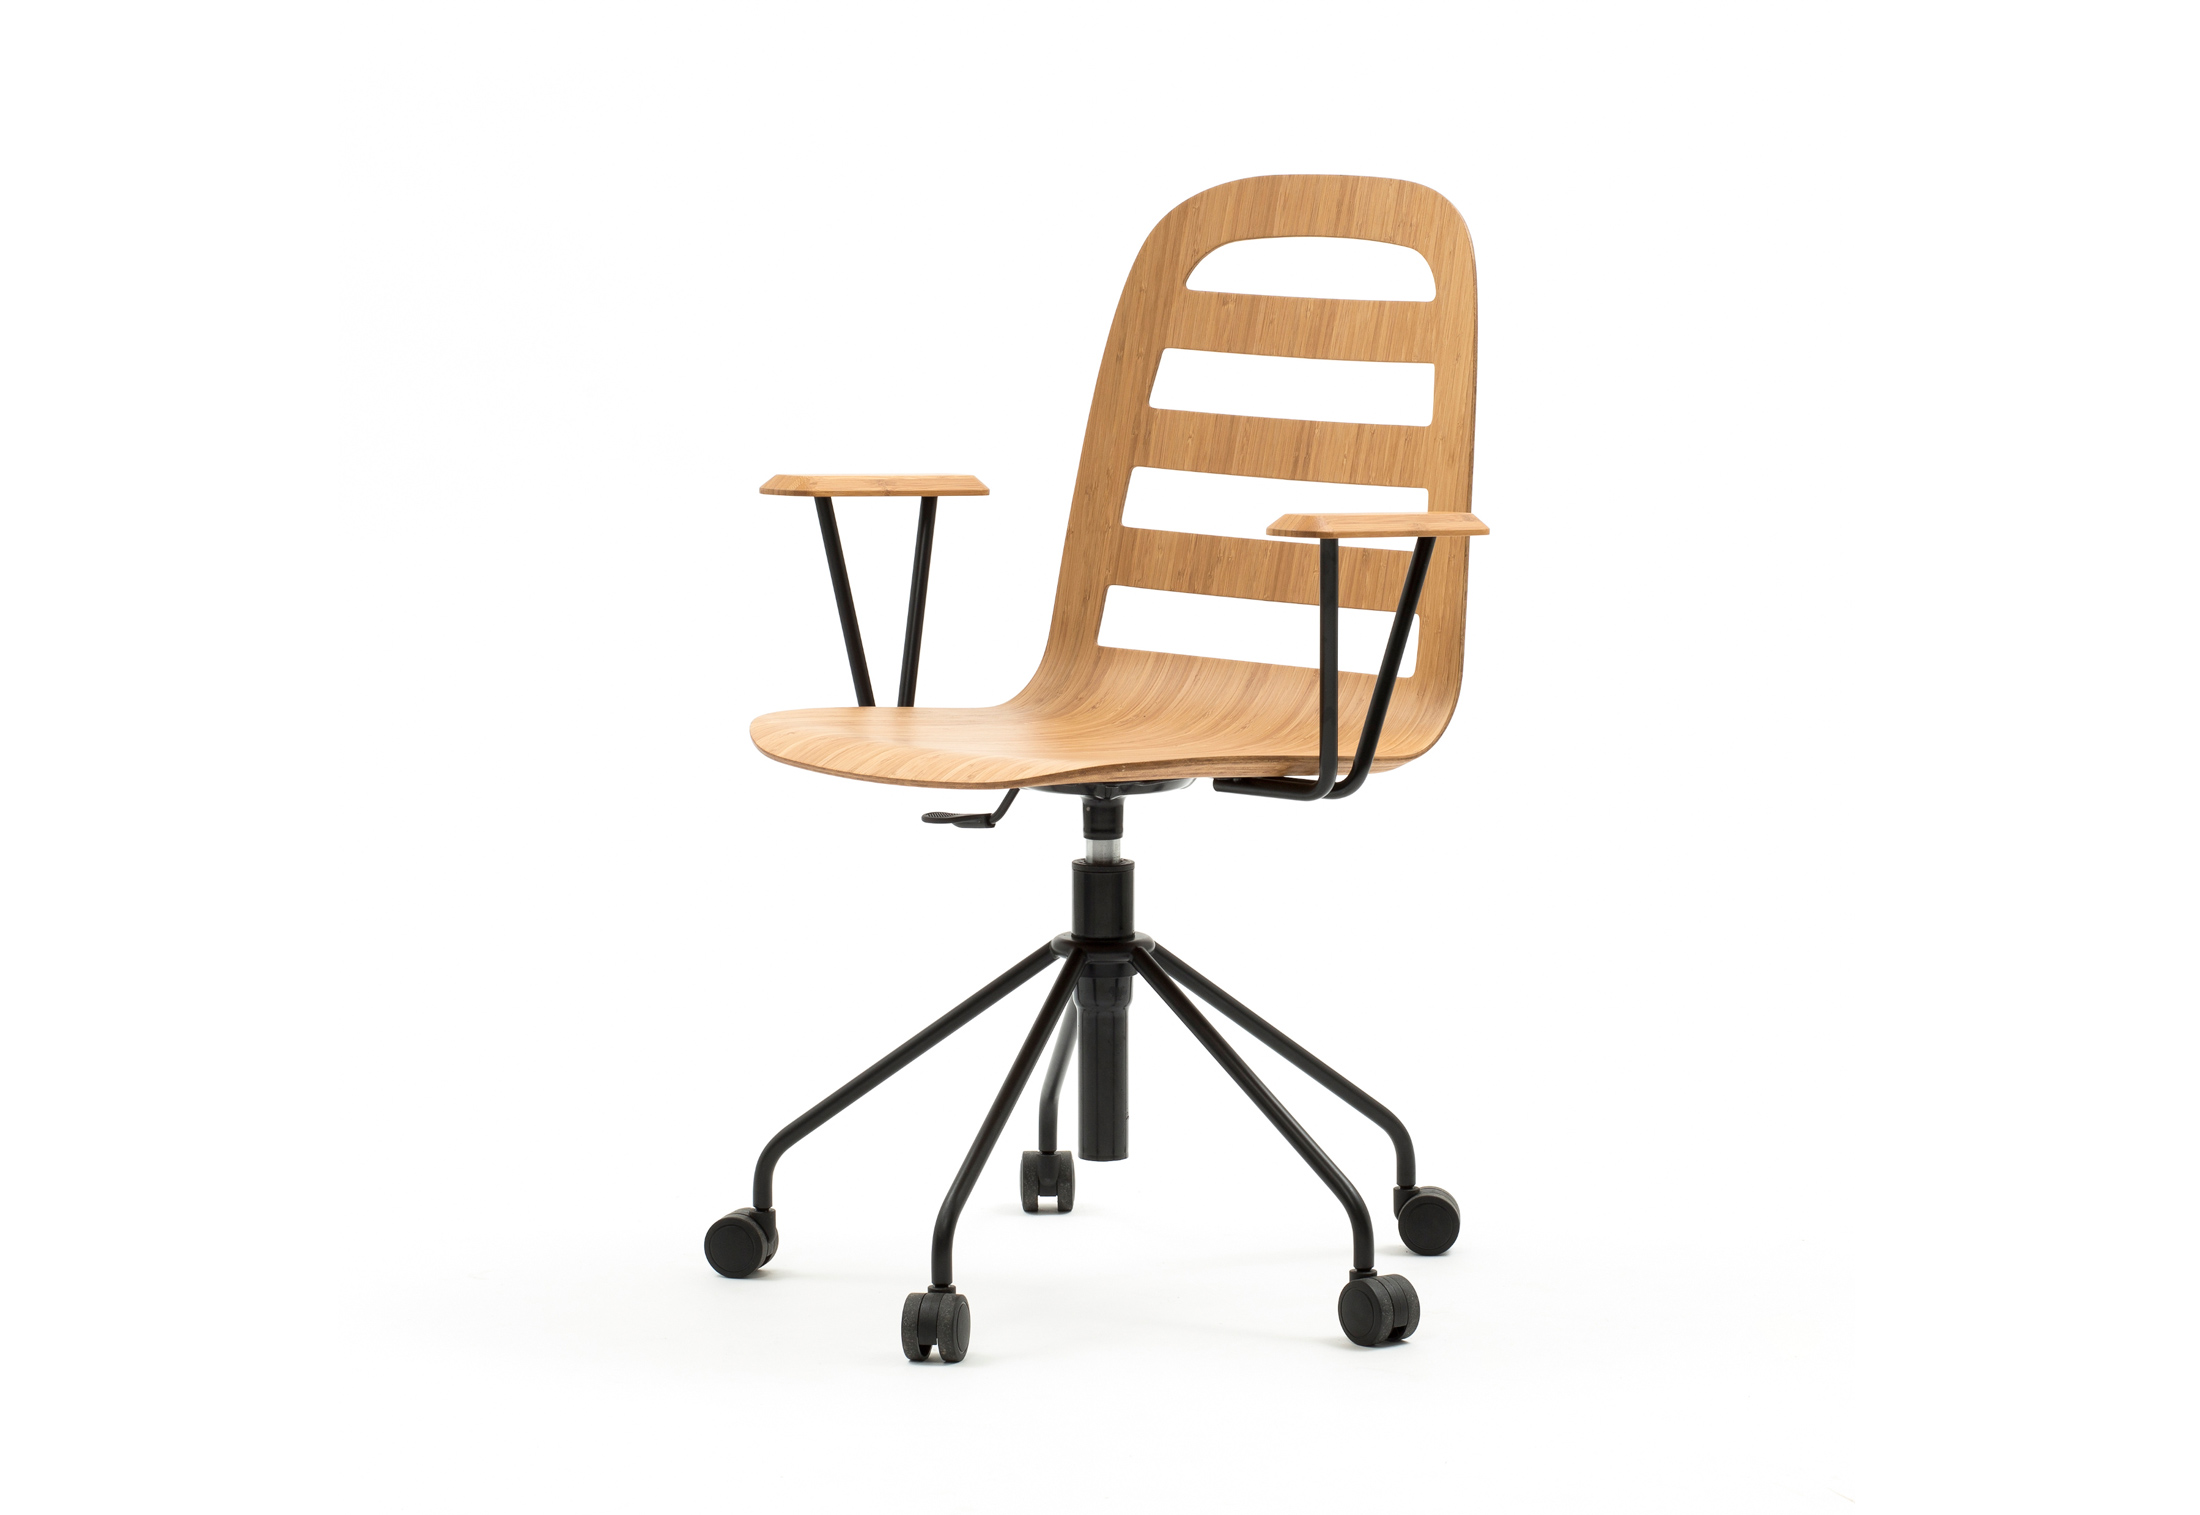 revolving chair without wheels colorado ski chairs smusso swivel with arms by discipline stylepark